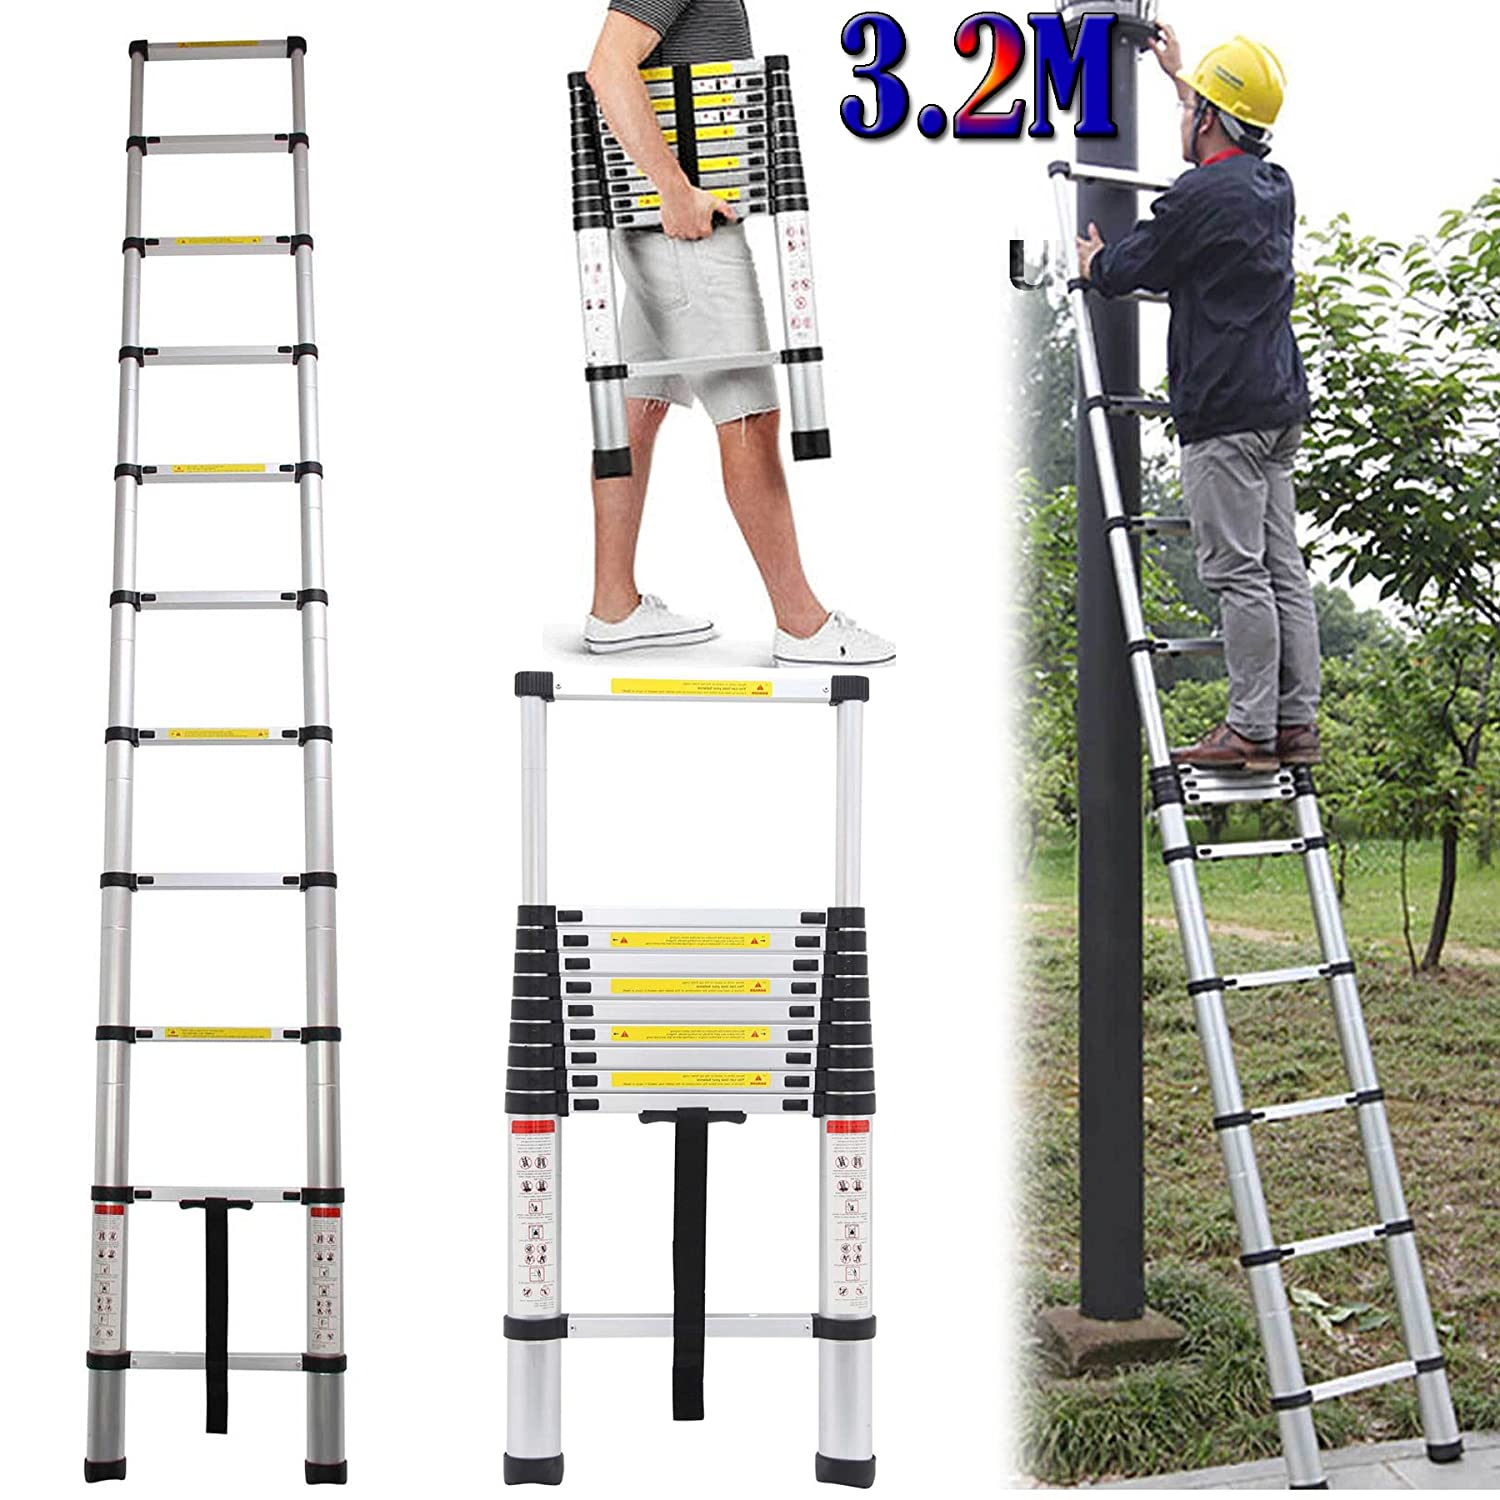 5M Telescopic Ladder Collapsible Ladder 2.5M+2.5M Aluminum A-Frame Multi-Purpose Extendable Ladder EN131 Certificate Included Excellent Design Autofu Factory